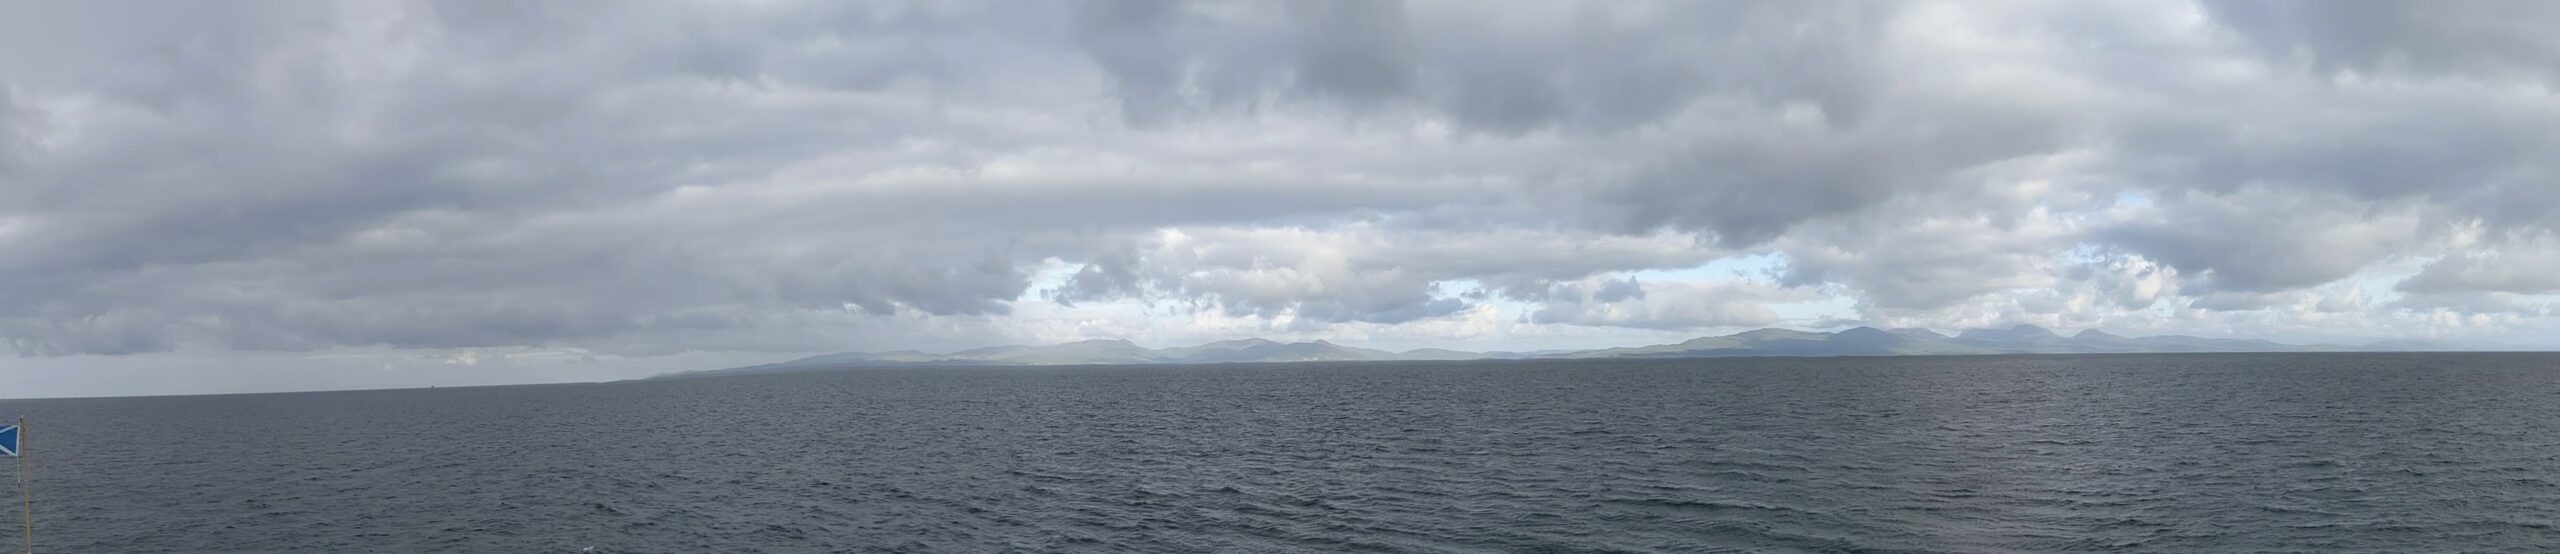 Mountainous islands of Islay (left) and Jura (right) seen from a ship approaching from the east.